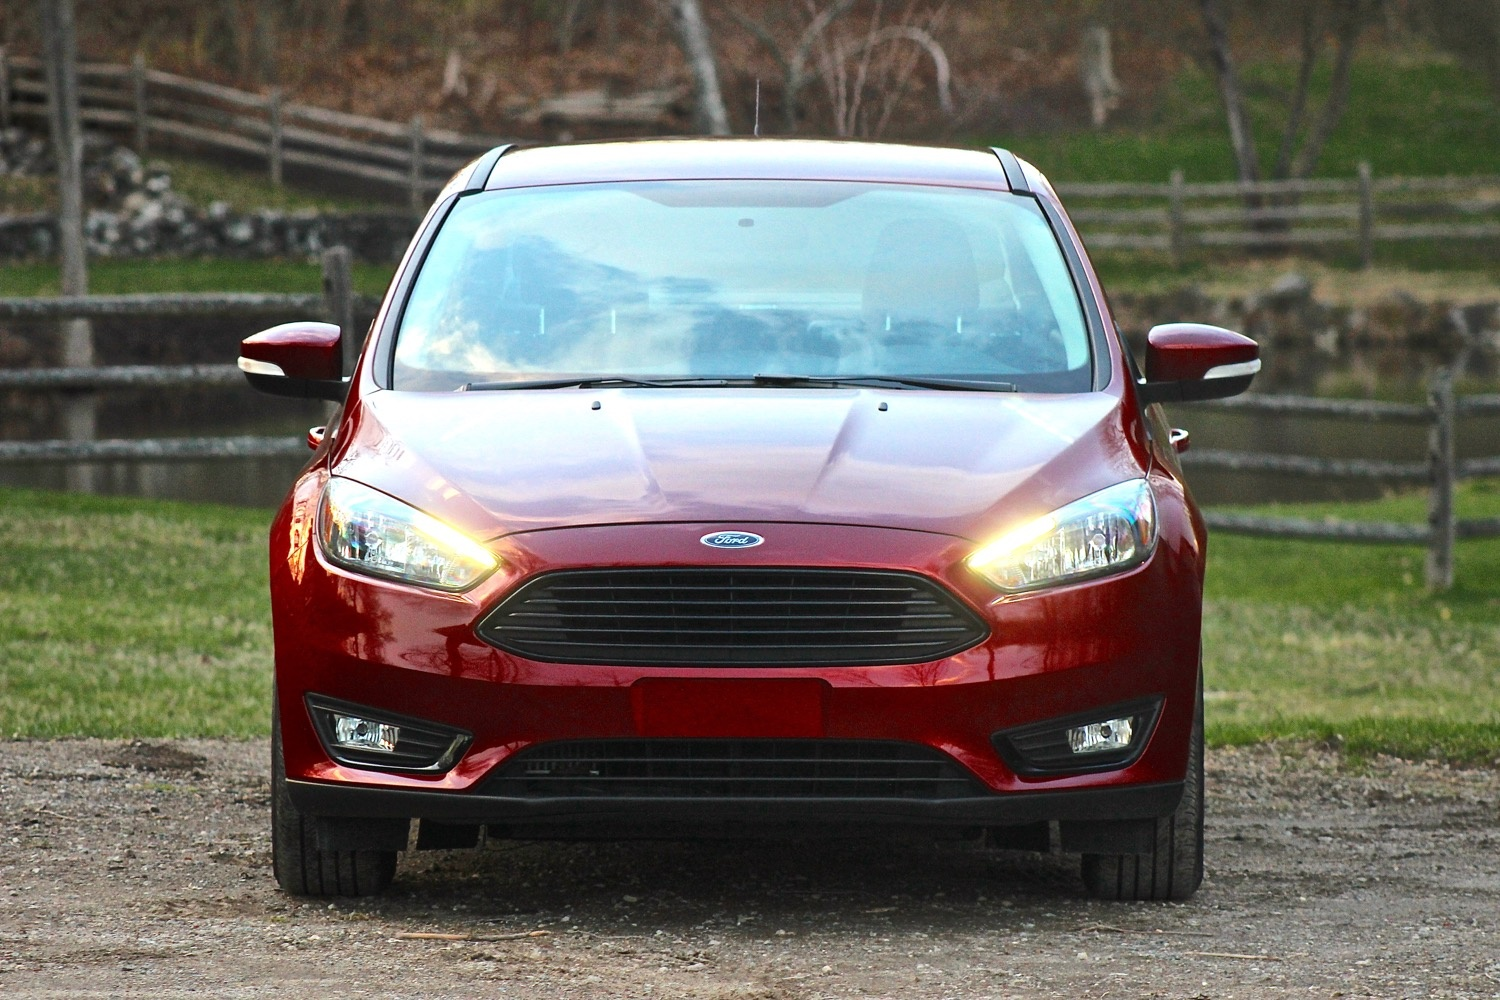 Exterior of the 2016 Ford Focus